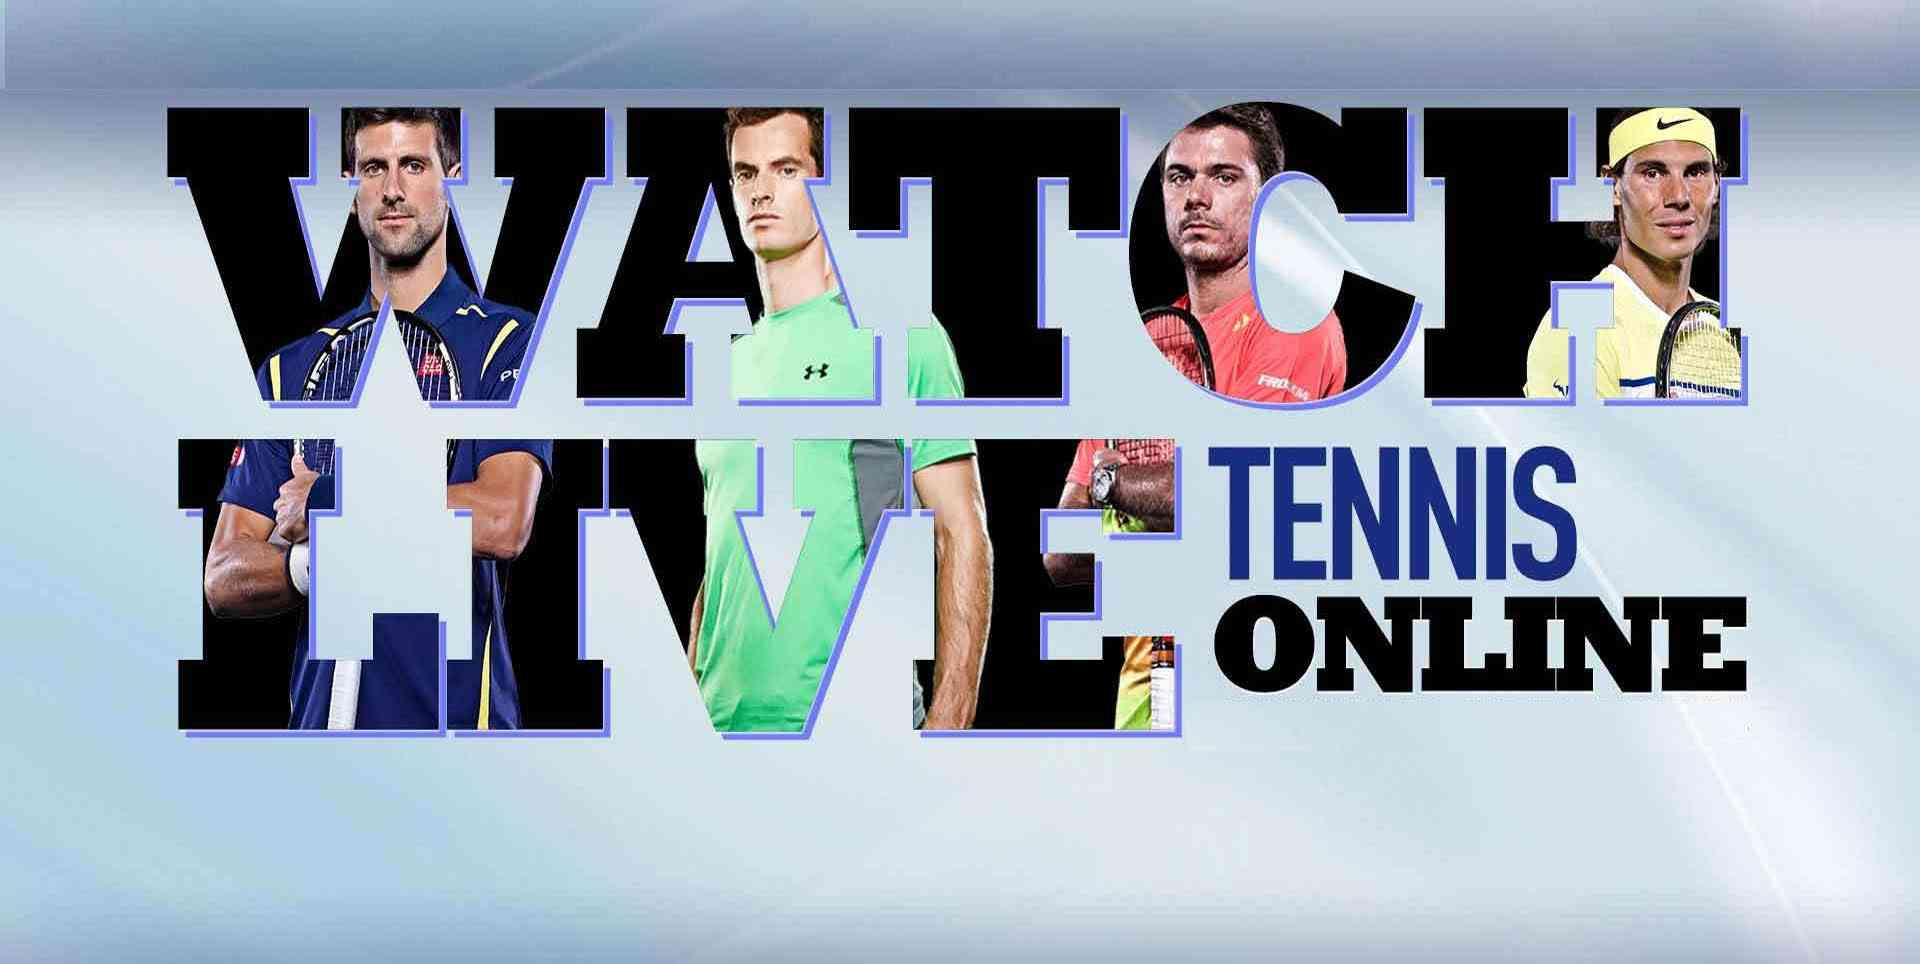 watch-v.-pospisil-|-j.-sock-vs-a.-peya-|-b.-soares-quarter-final-online